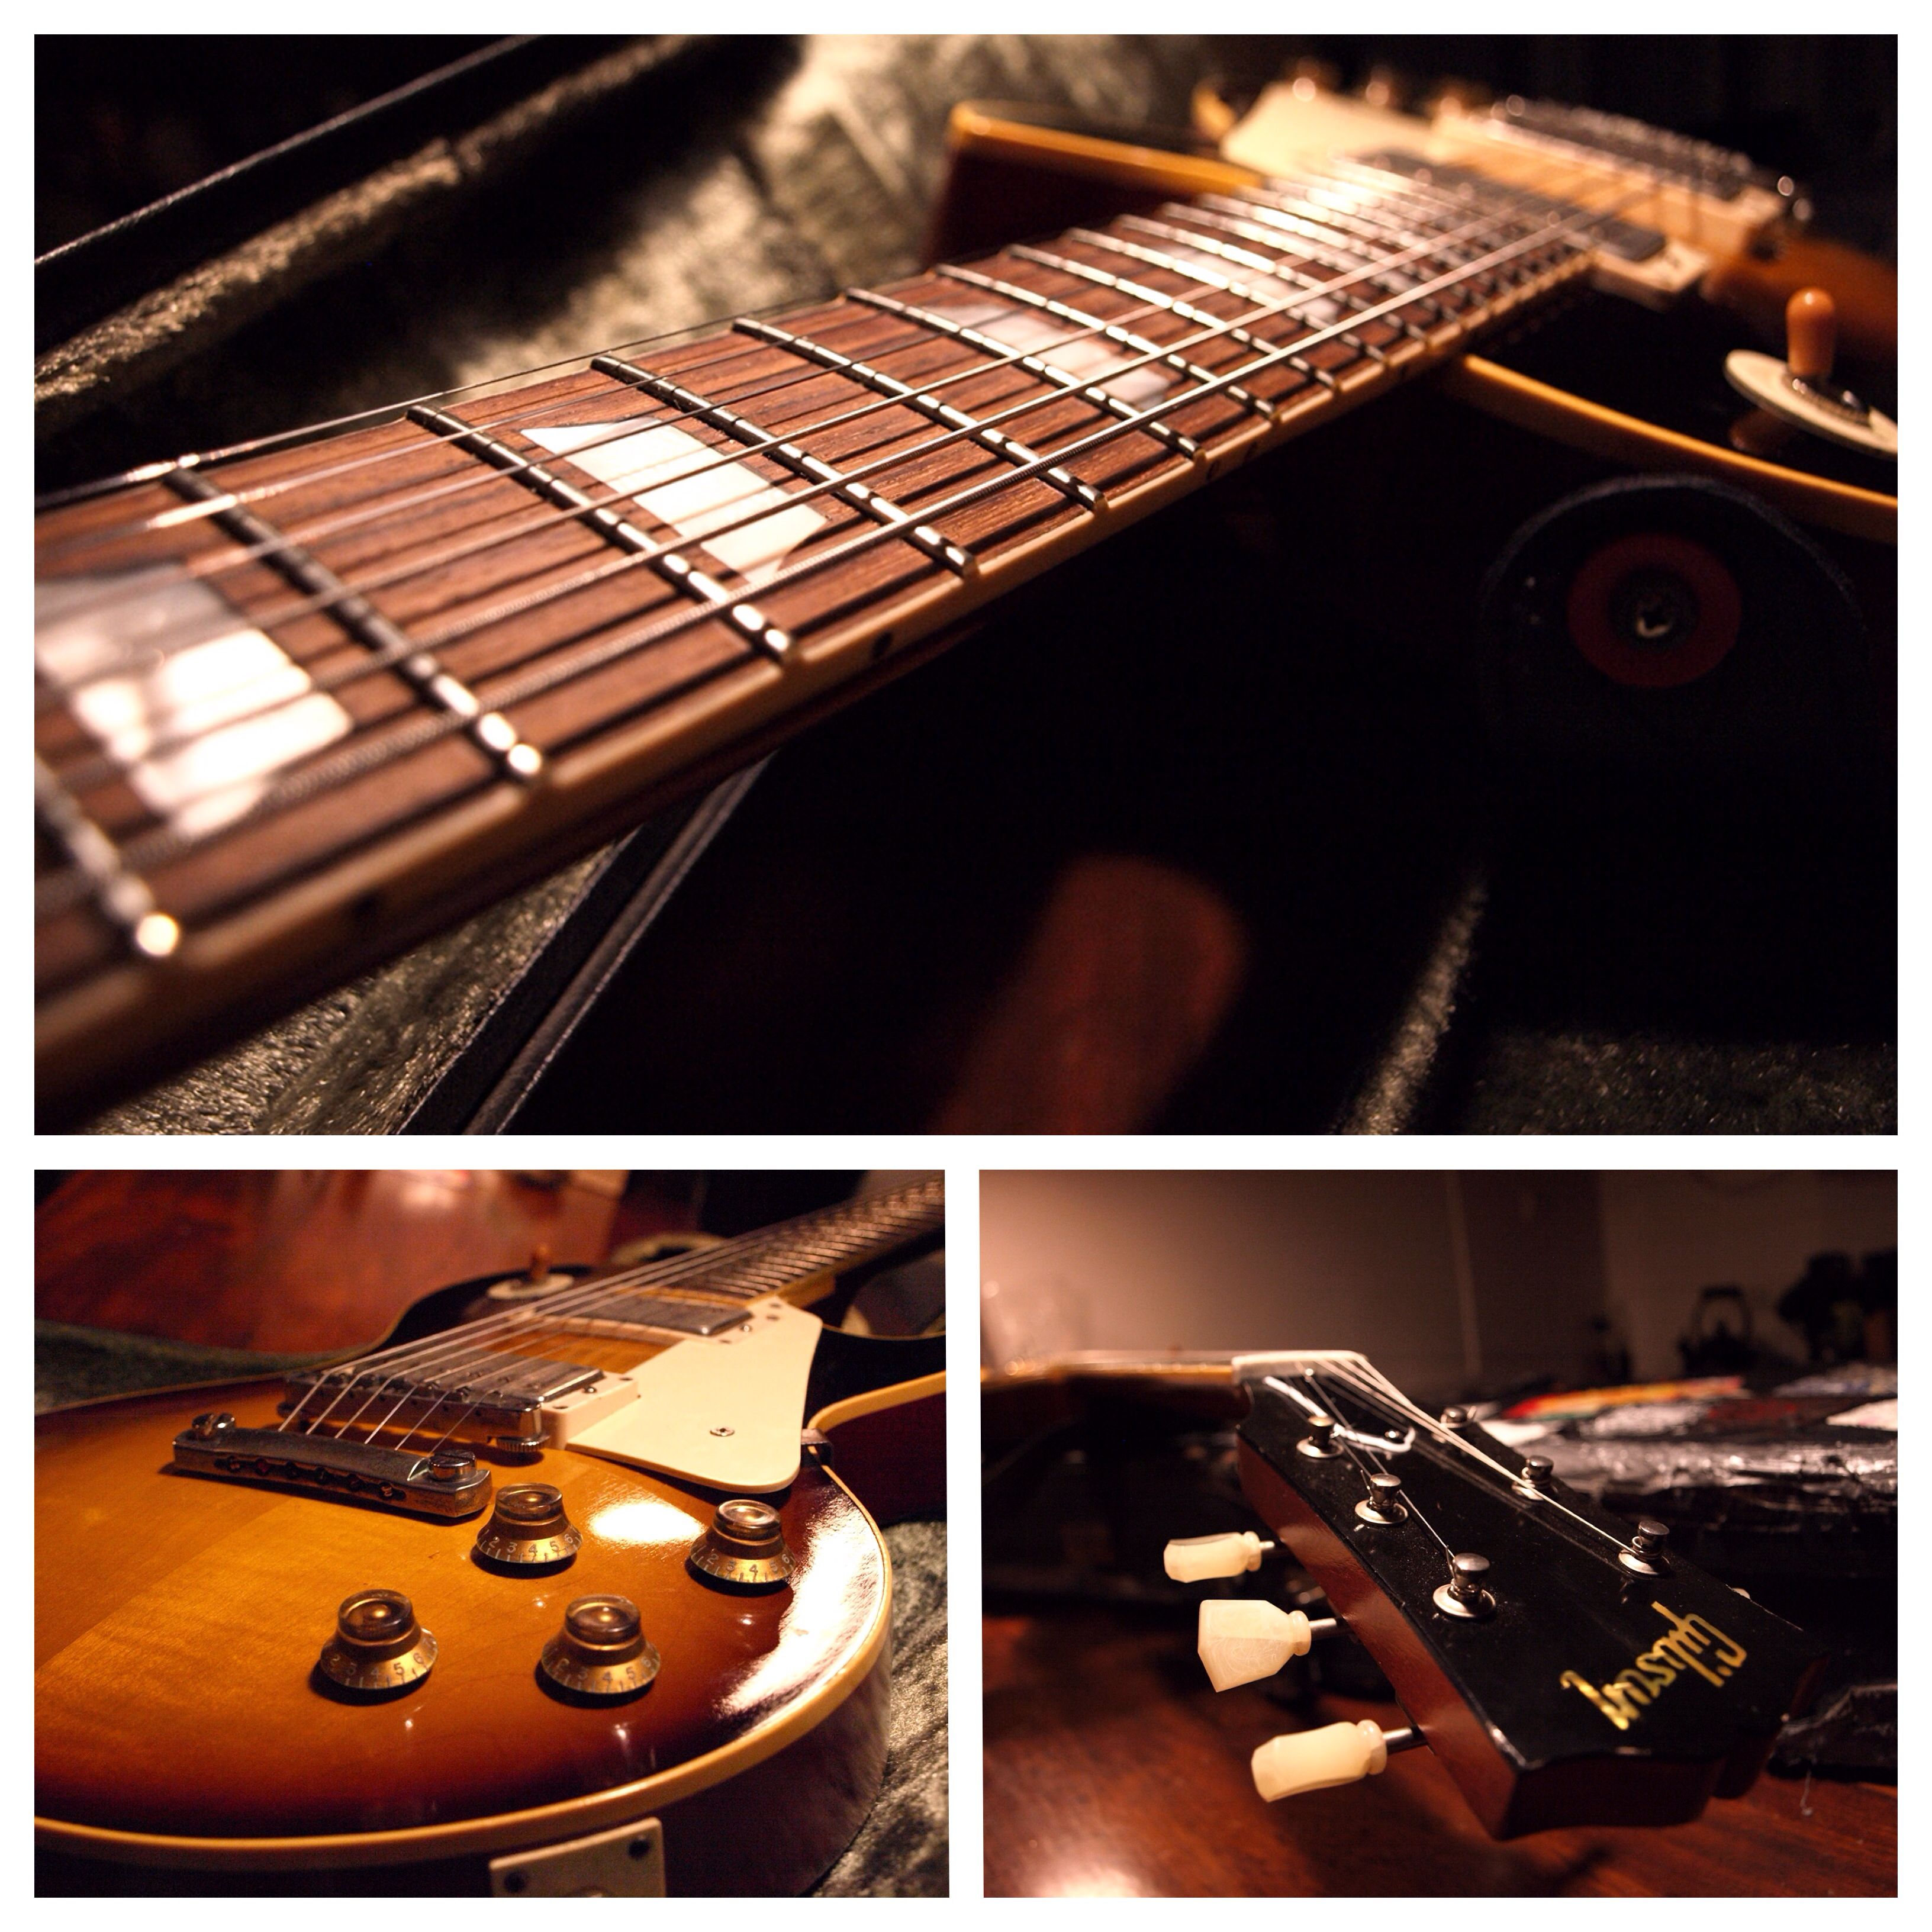 build this 1959 gibson les paul replica myself from bare wood build this 1959 gibson les paul replica myself from bare wood gibson les paulelectric guitars